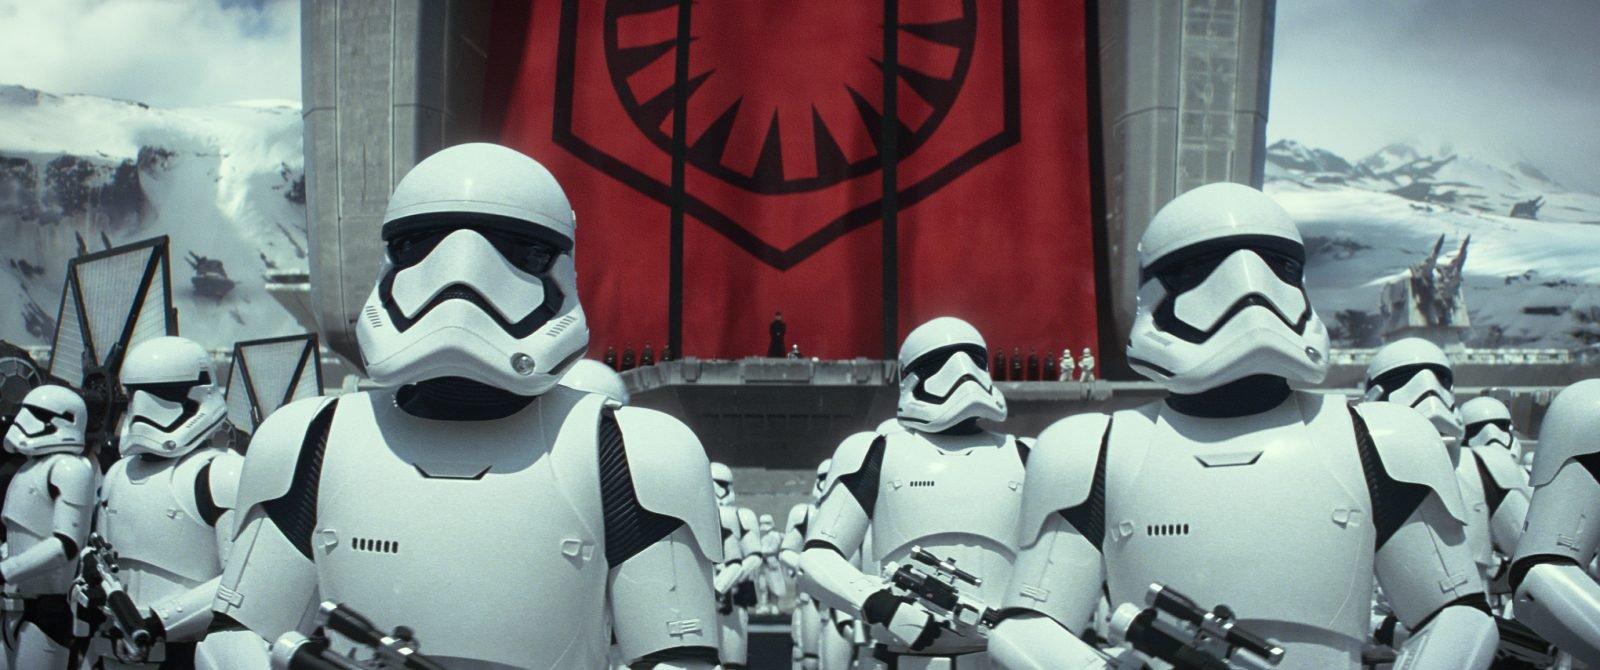 Star Wars VII The Force Awakens 26 - Stormtroopers gather